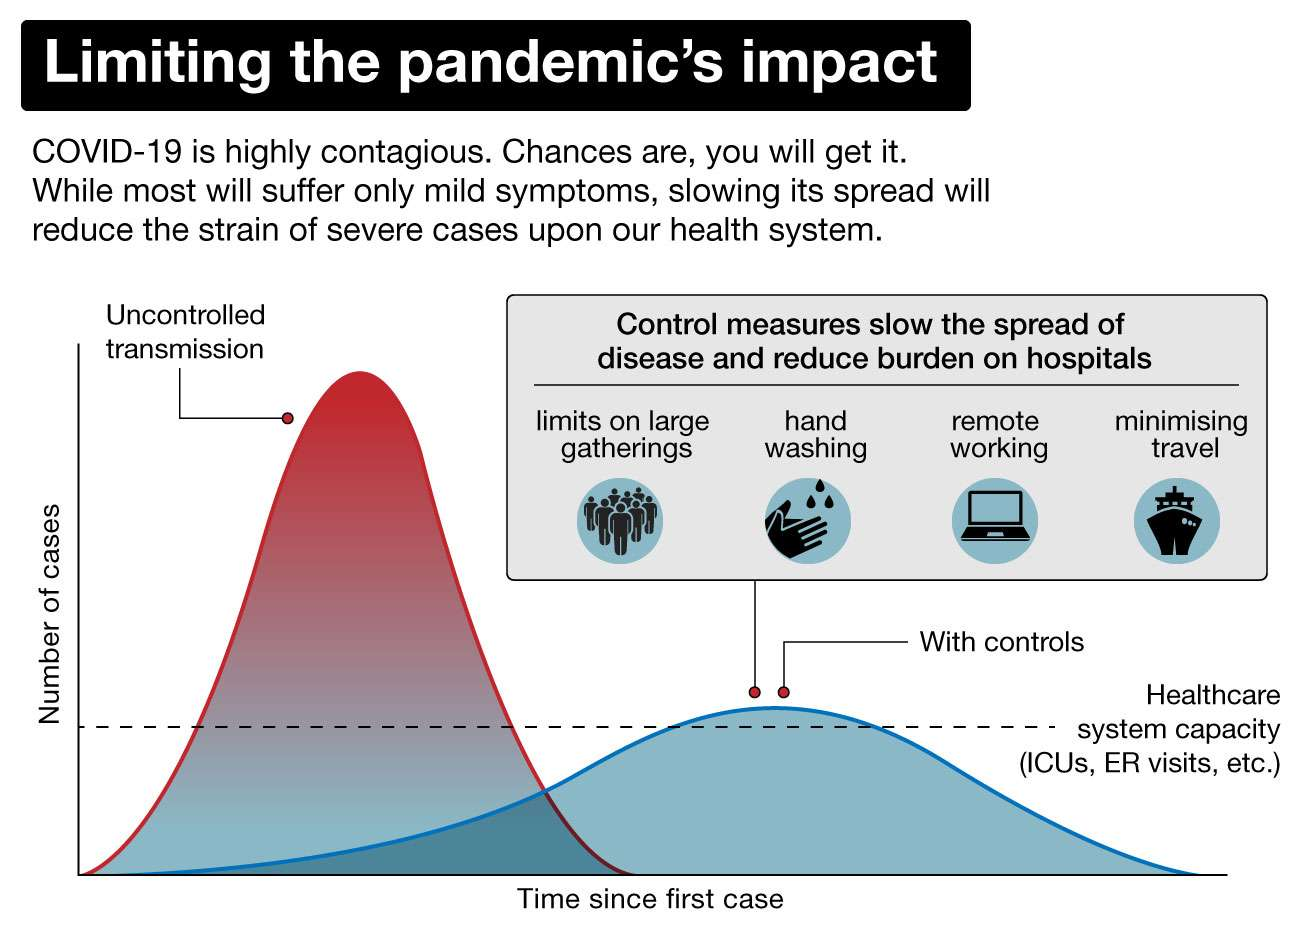 NED-1361-Limiting the pandemic's impact - 0